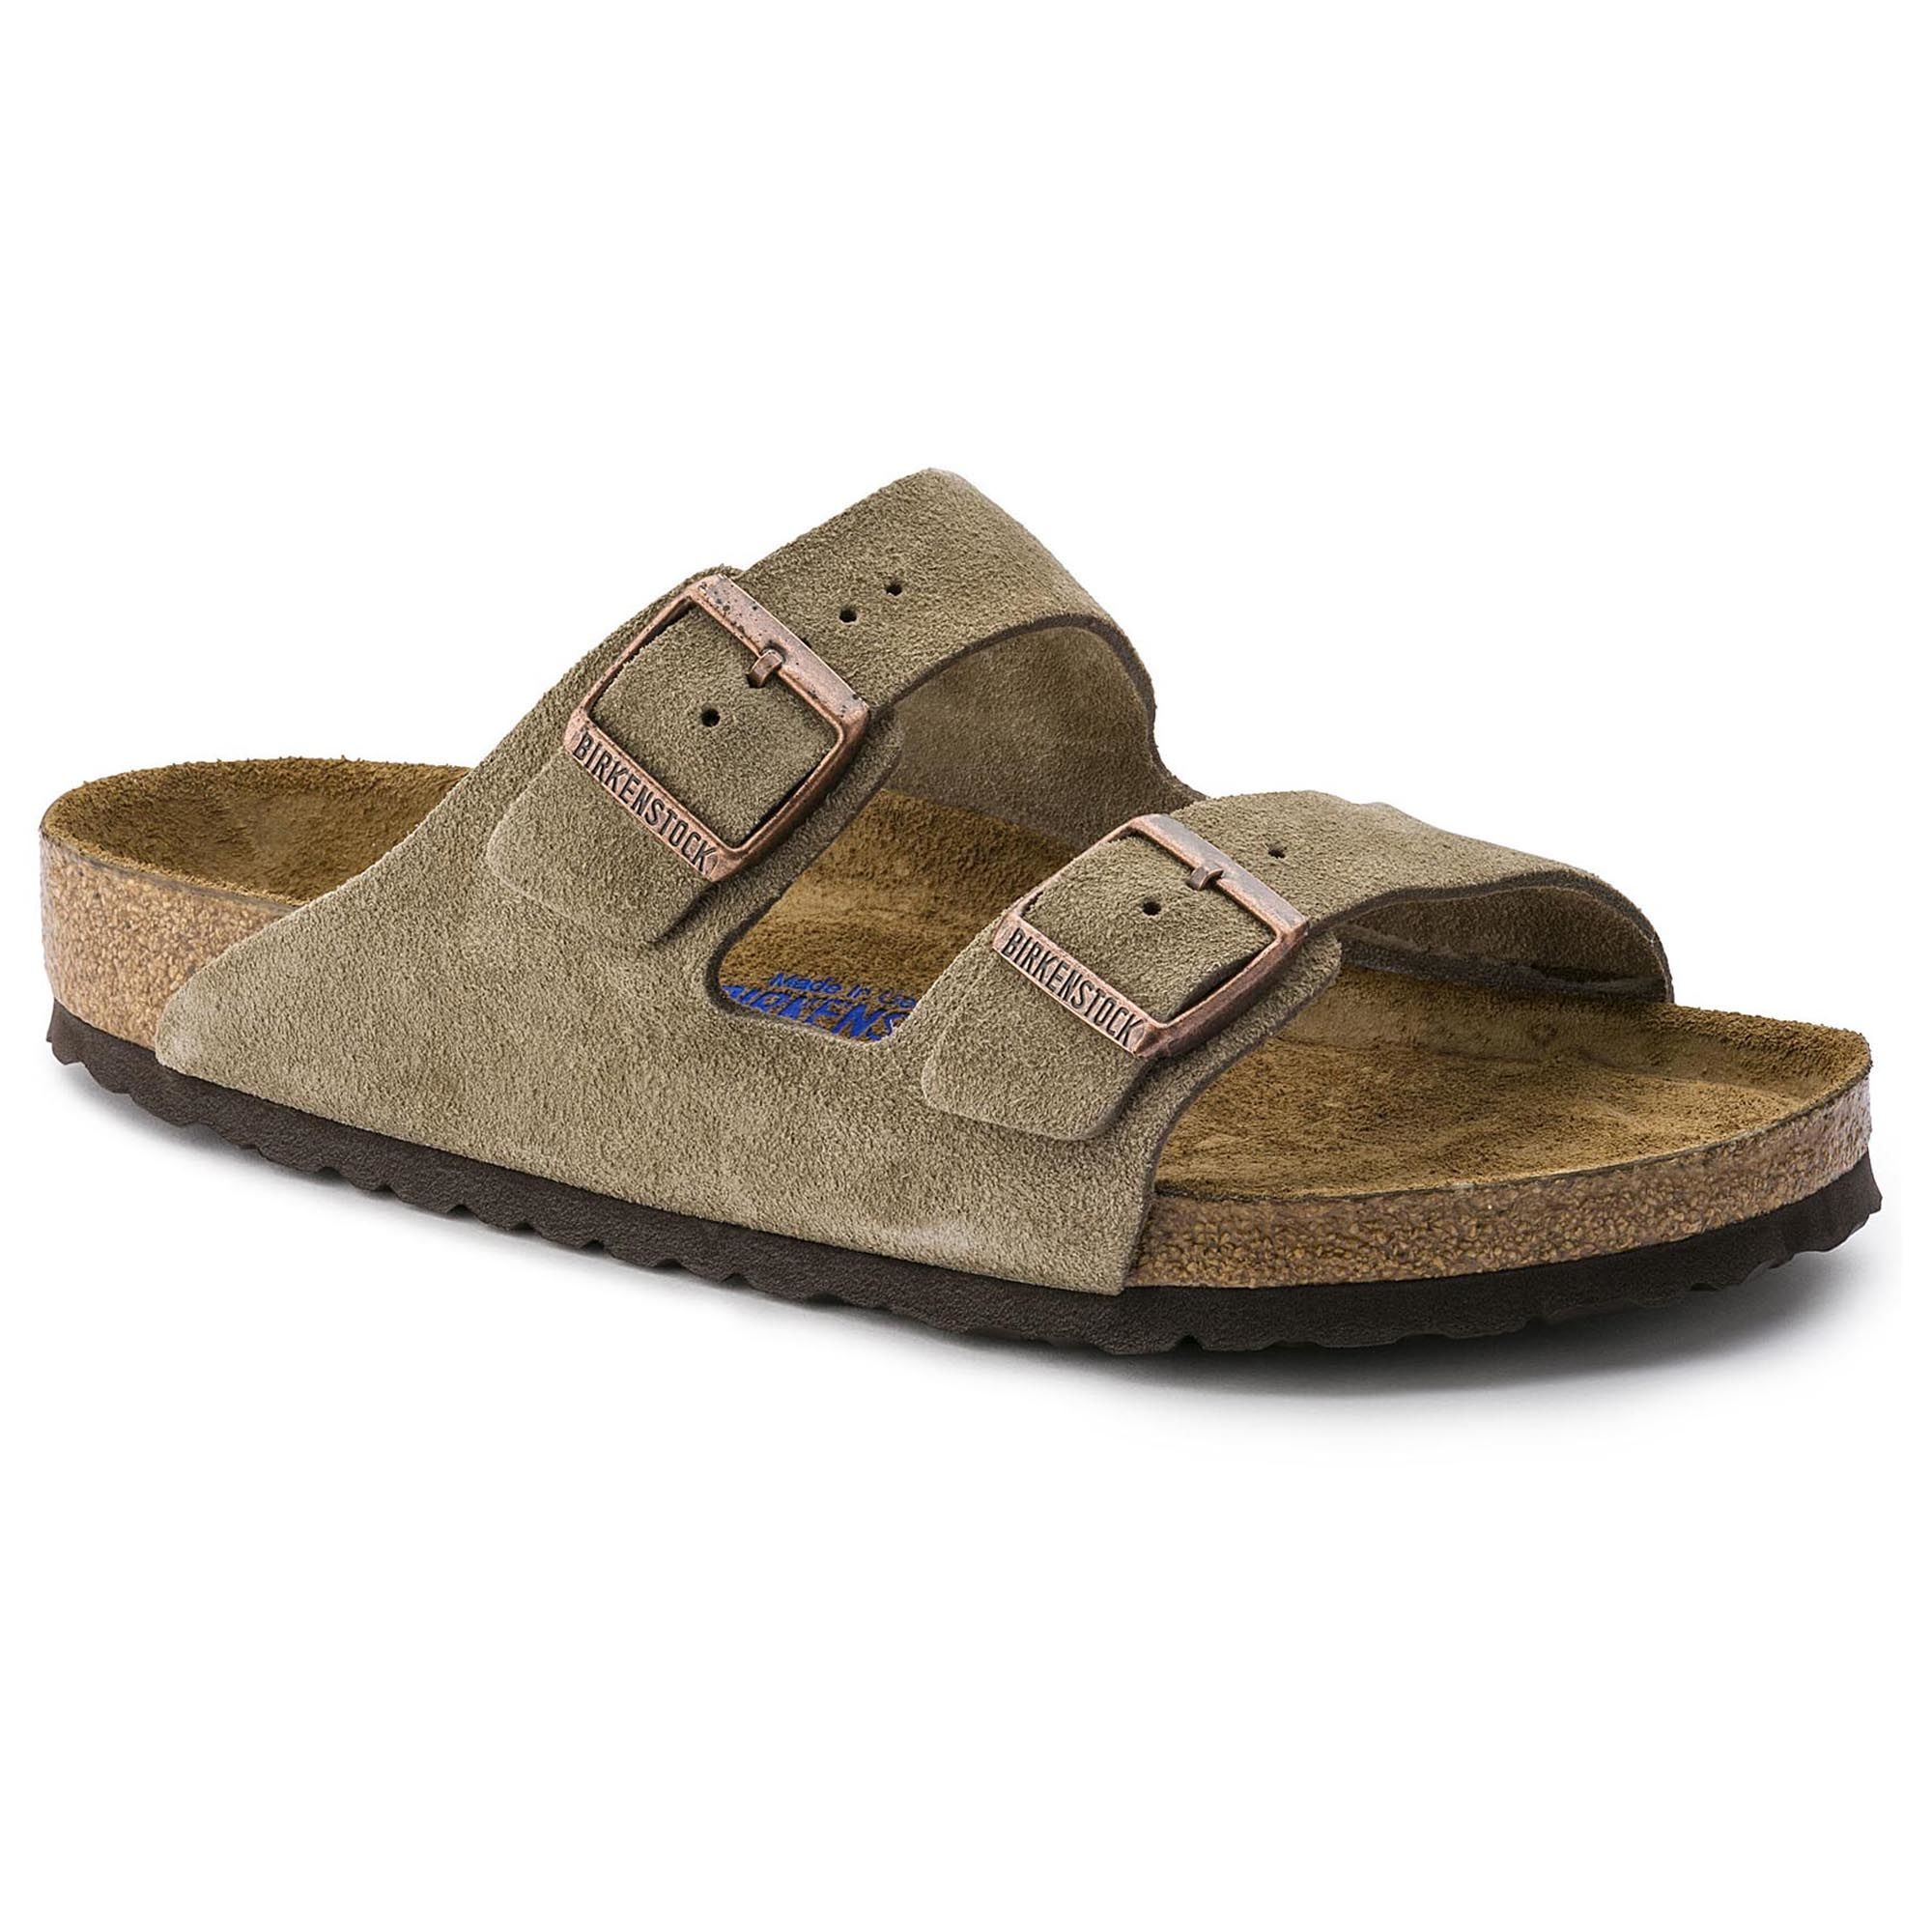 Arizona Soft Footbed Suede Taupe 0a5d1ccc1a7